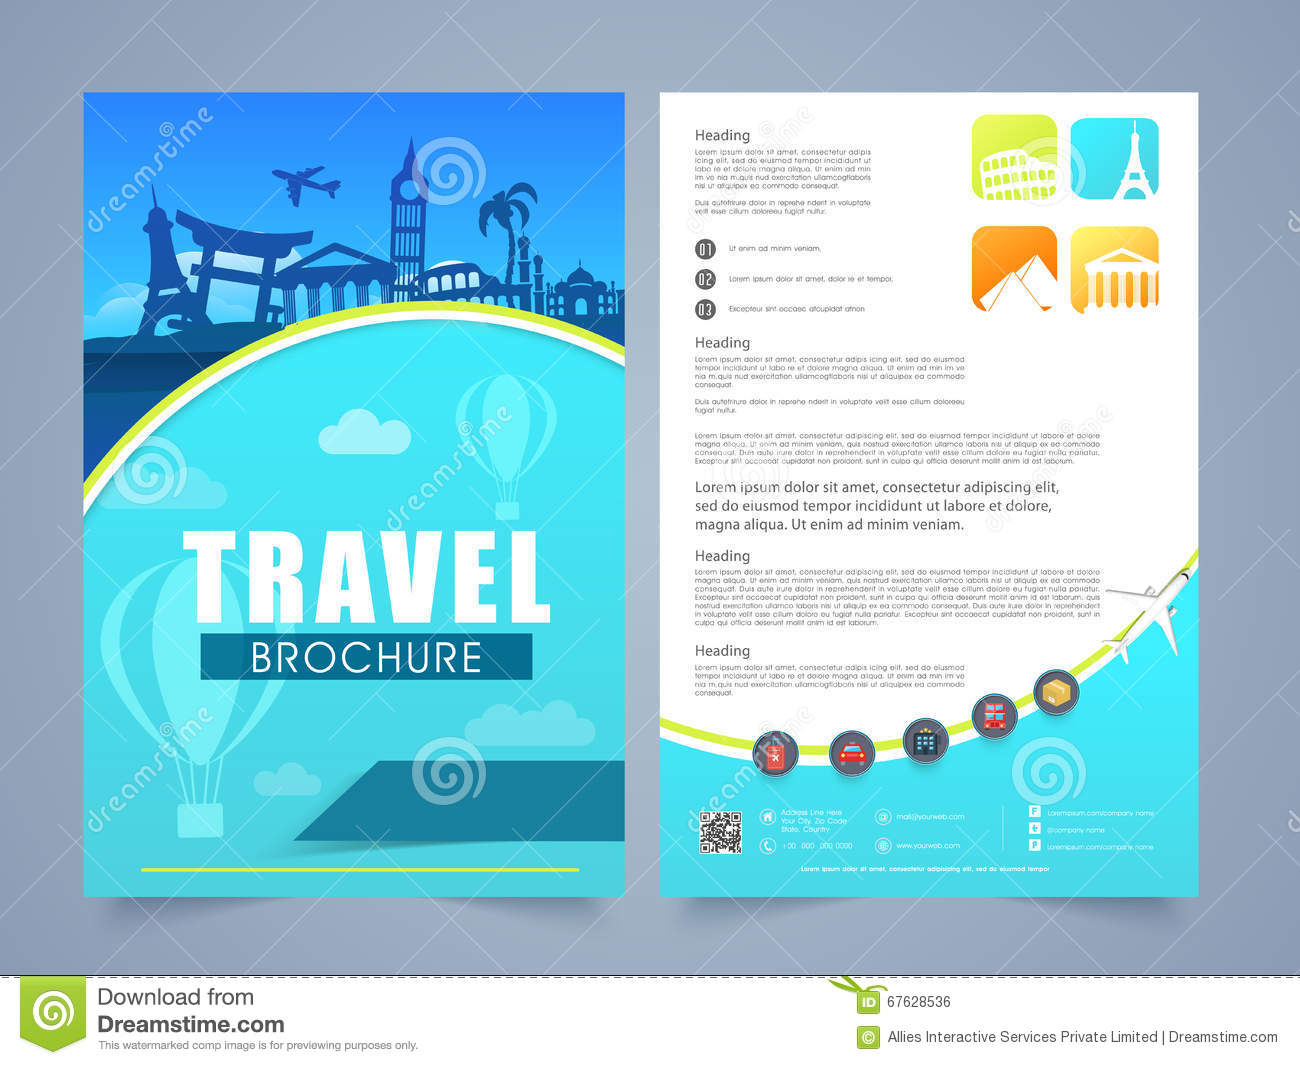 travel brochure template or flyer design stock illustration travel brochure template or flyer design